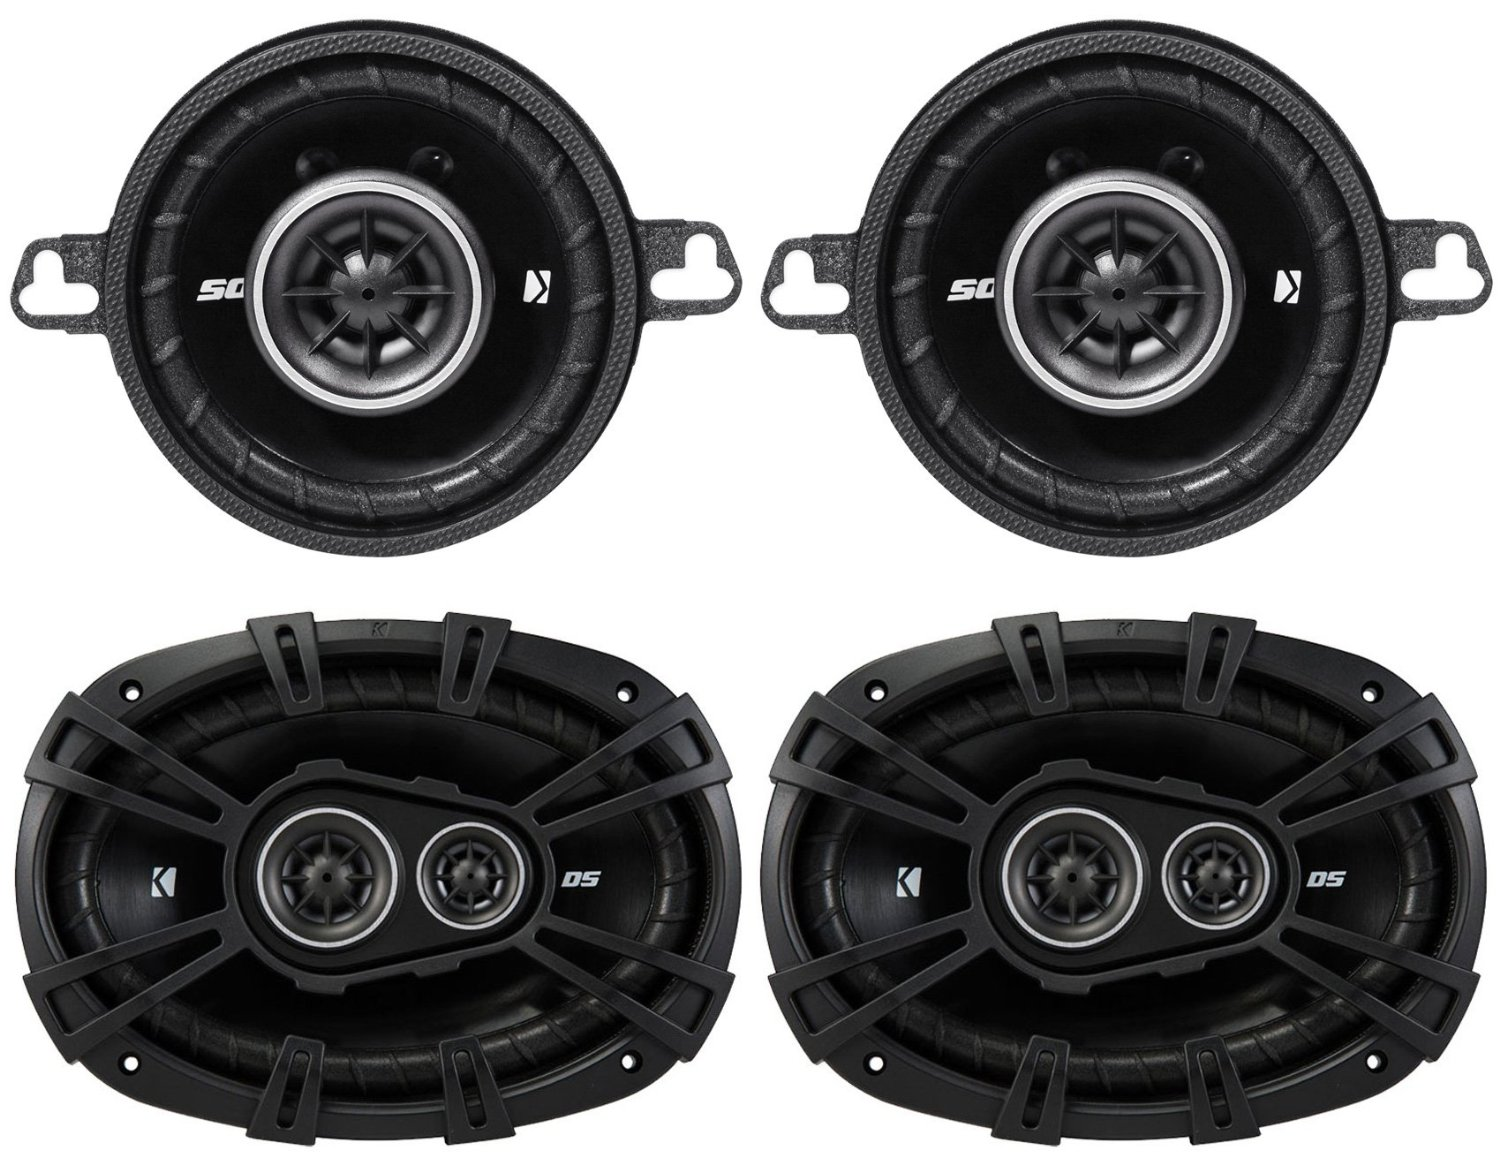 "Package: Pair of Kicker 43DSC69304 6""x9"" 360 Watt 3-Way Speakers With 4-Ohm Impedance + Pair of Kicker 43DSC3504 DSC350 80 Watt 3.5"" 2-Way Car Stereo Speakers"